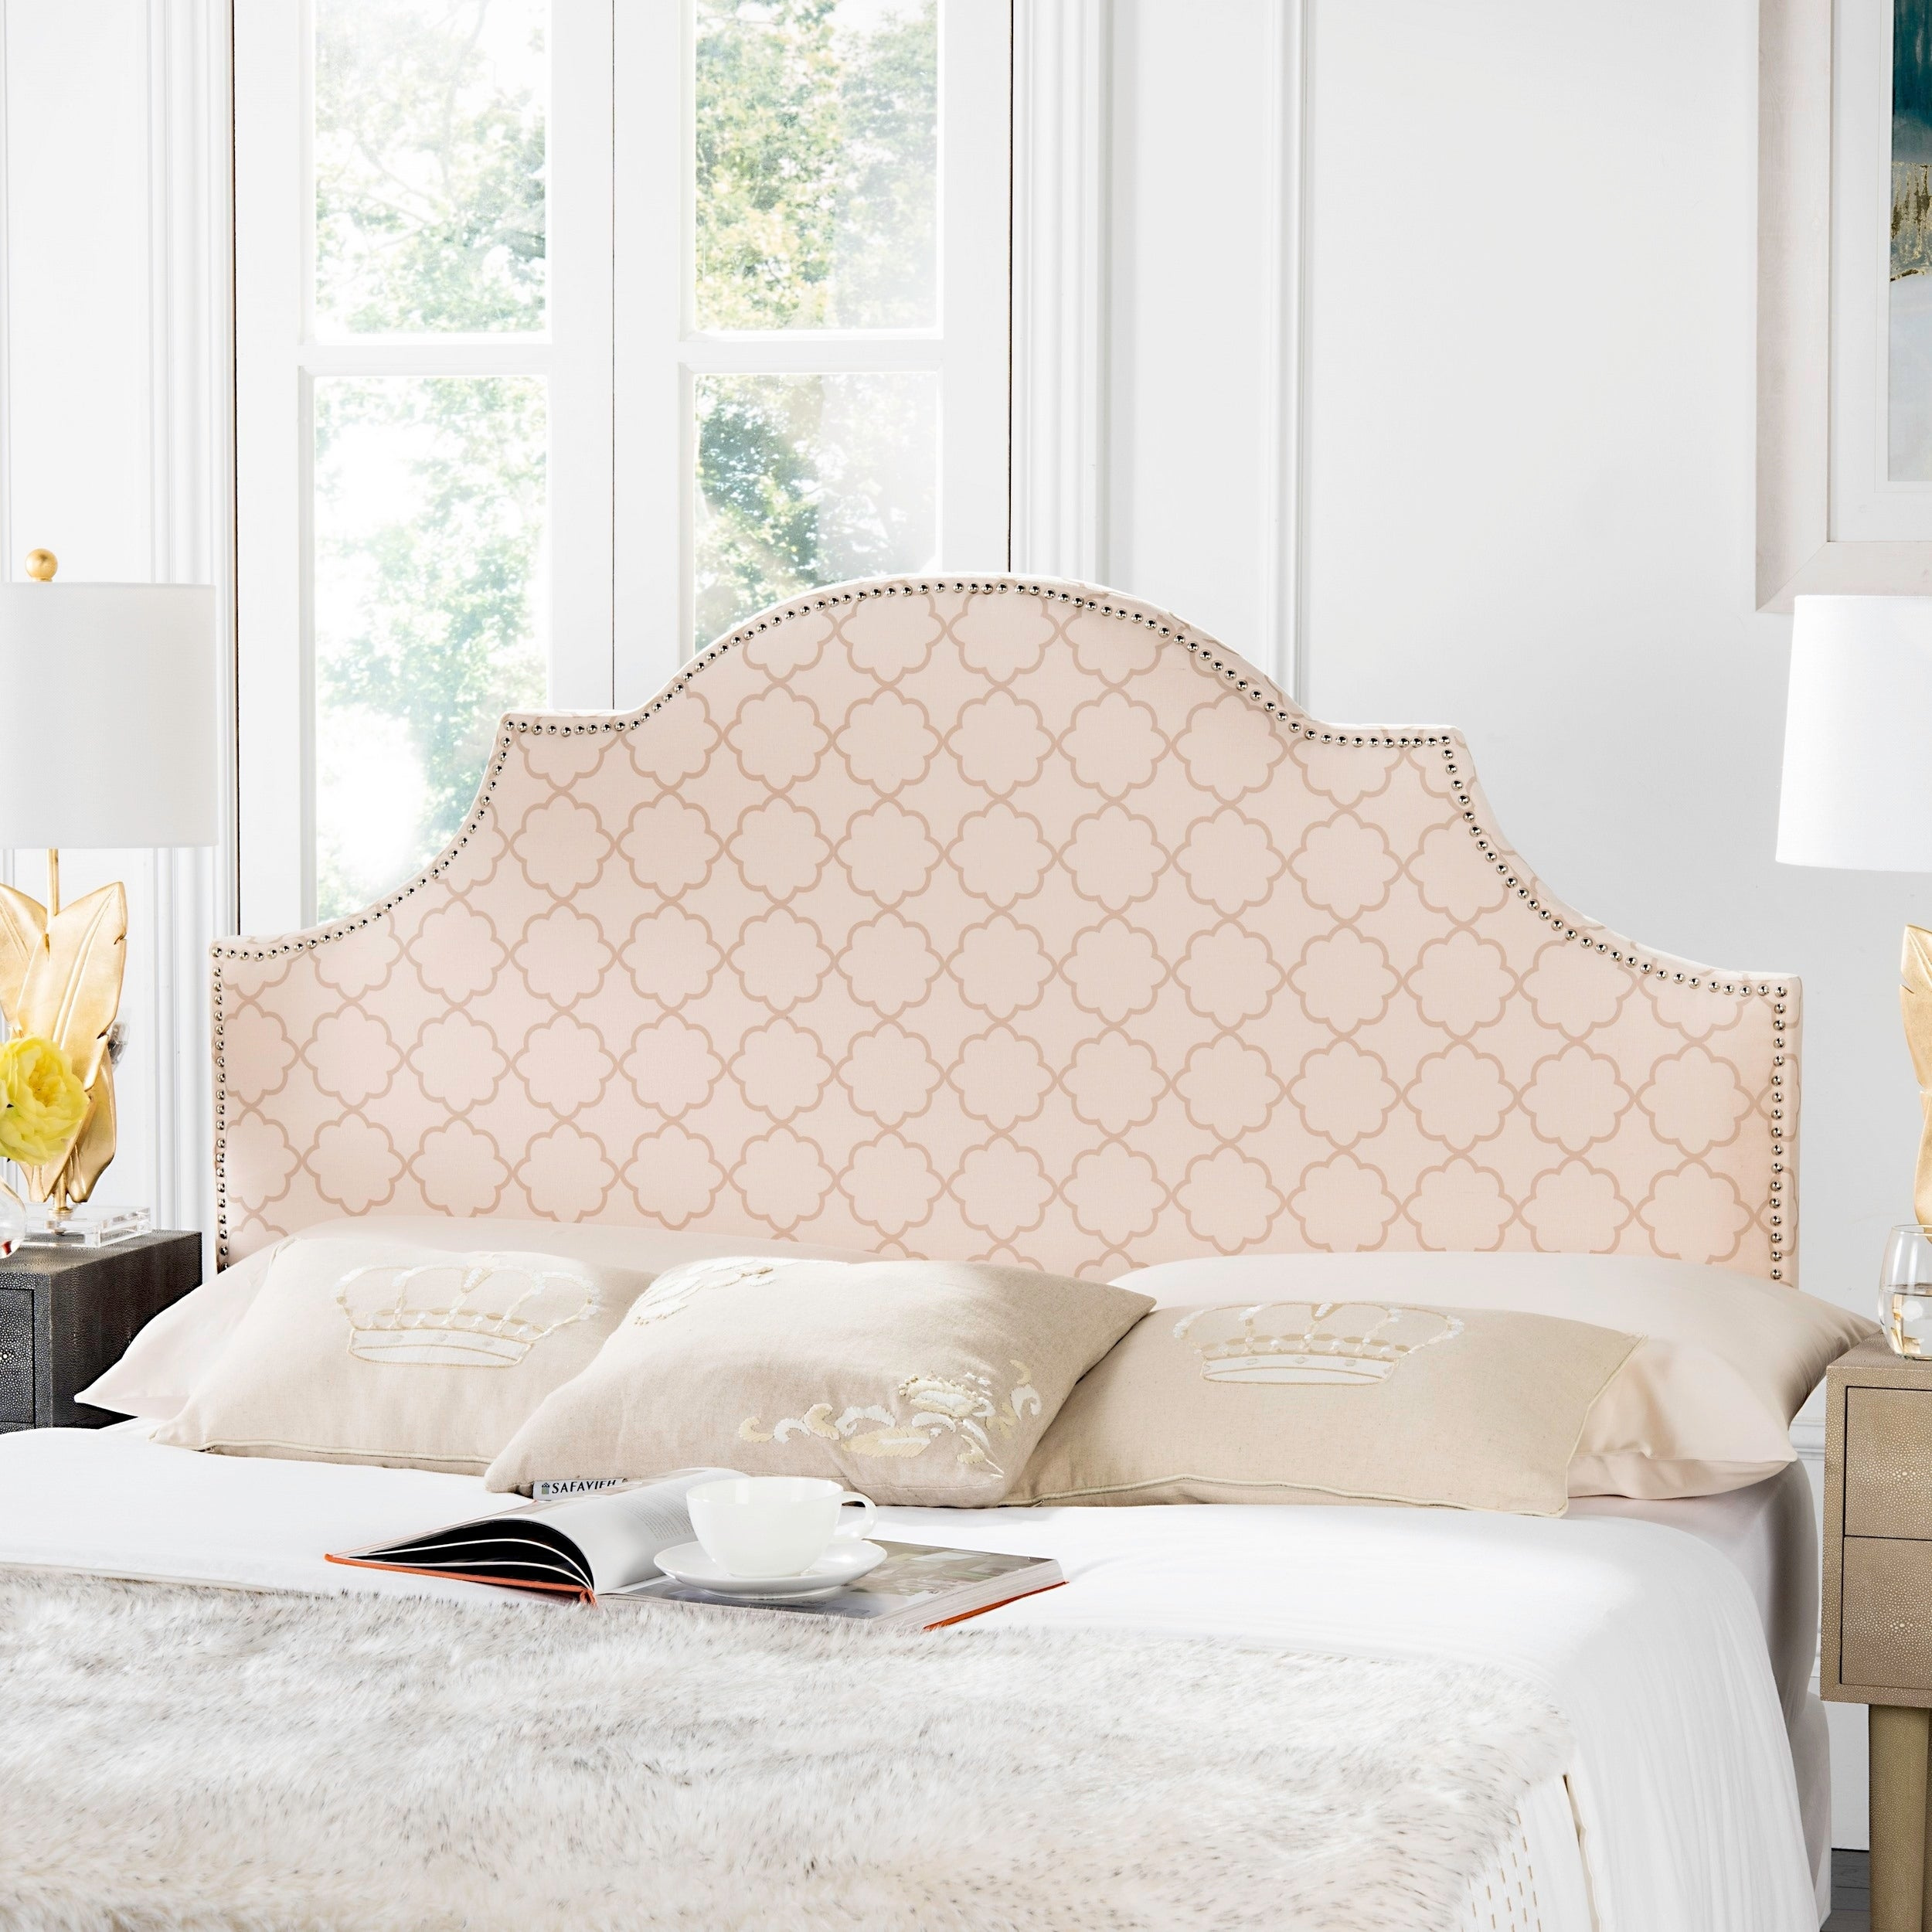 Shop Safavieh Hallmar Pale Pink Beige Upholstered Arched Headboard Silver Nailhead Queen On Sale Overstock 8419852